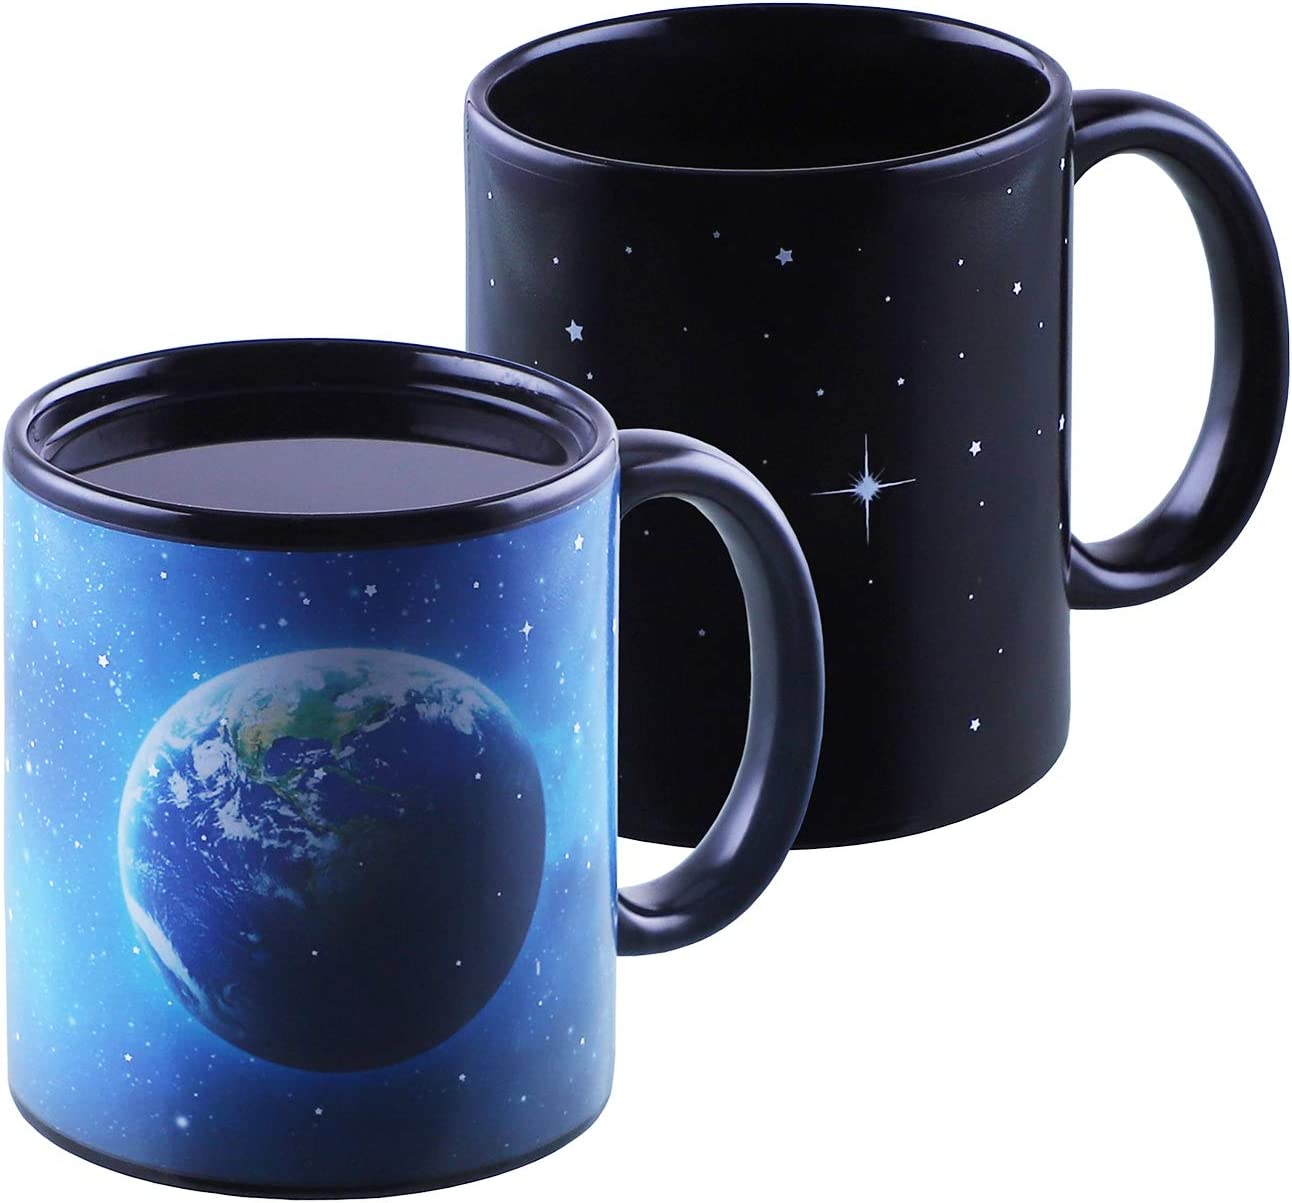 This is an image of a heat-sensitive mug in blue color with earth print on one mug.